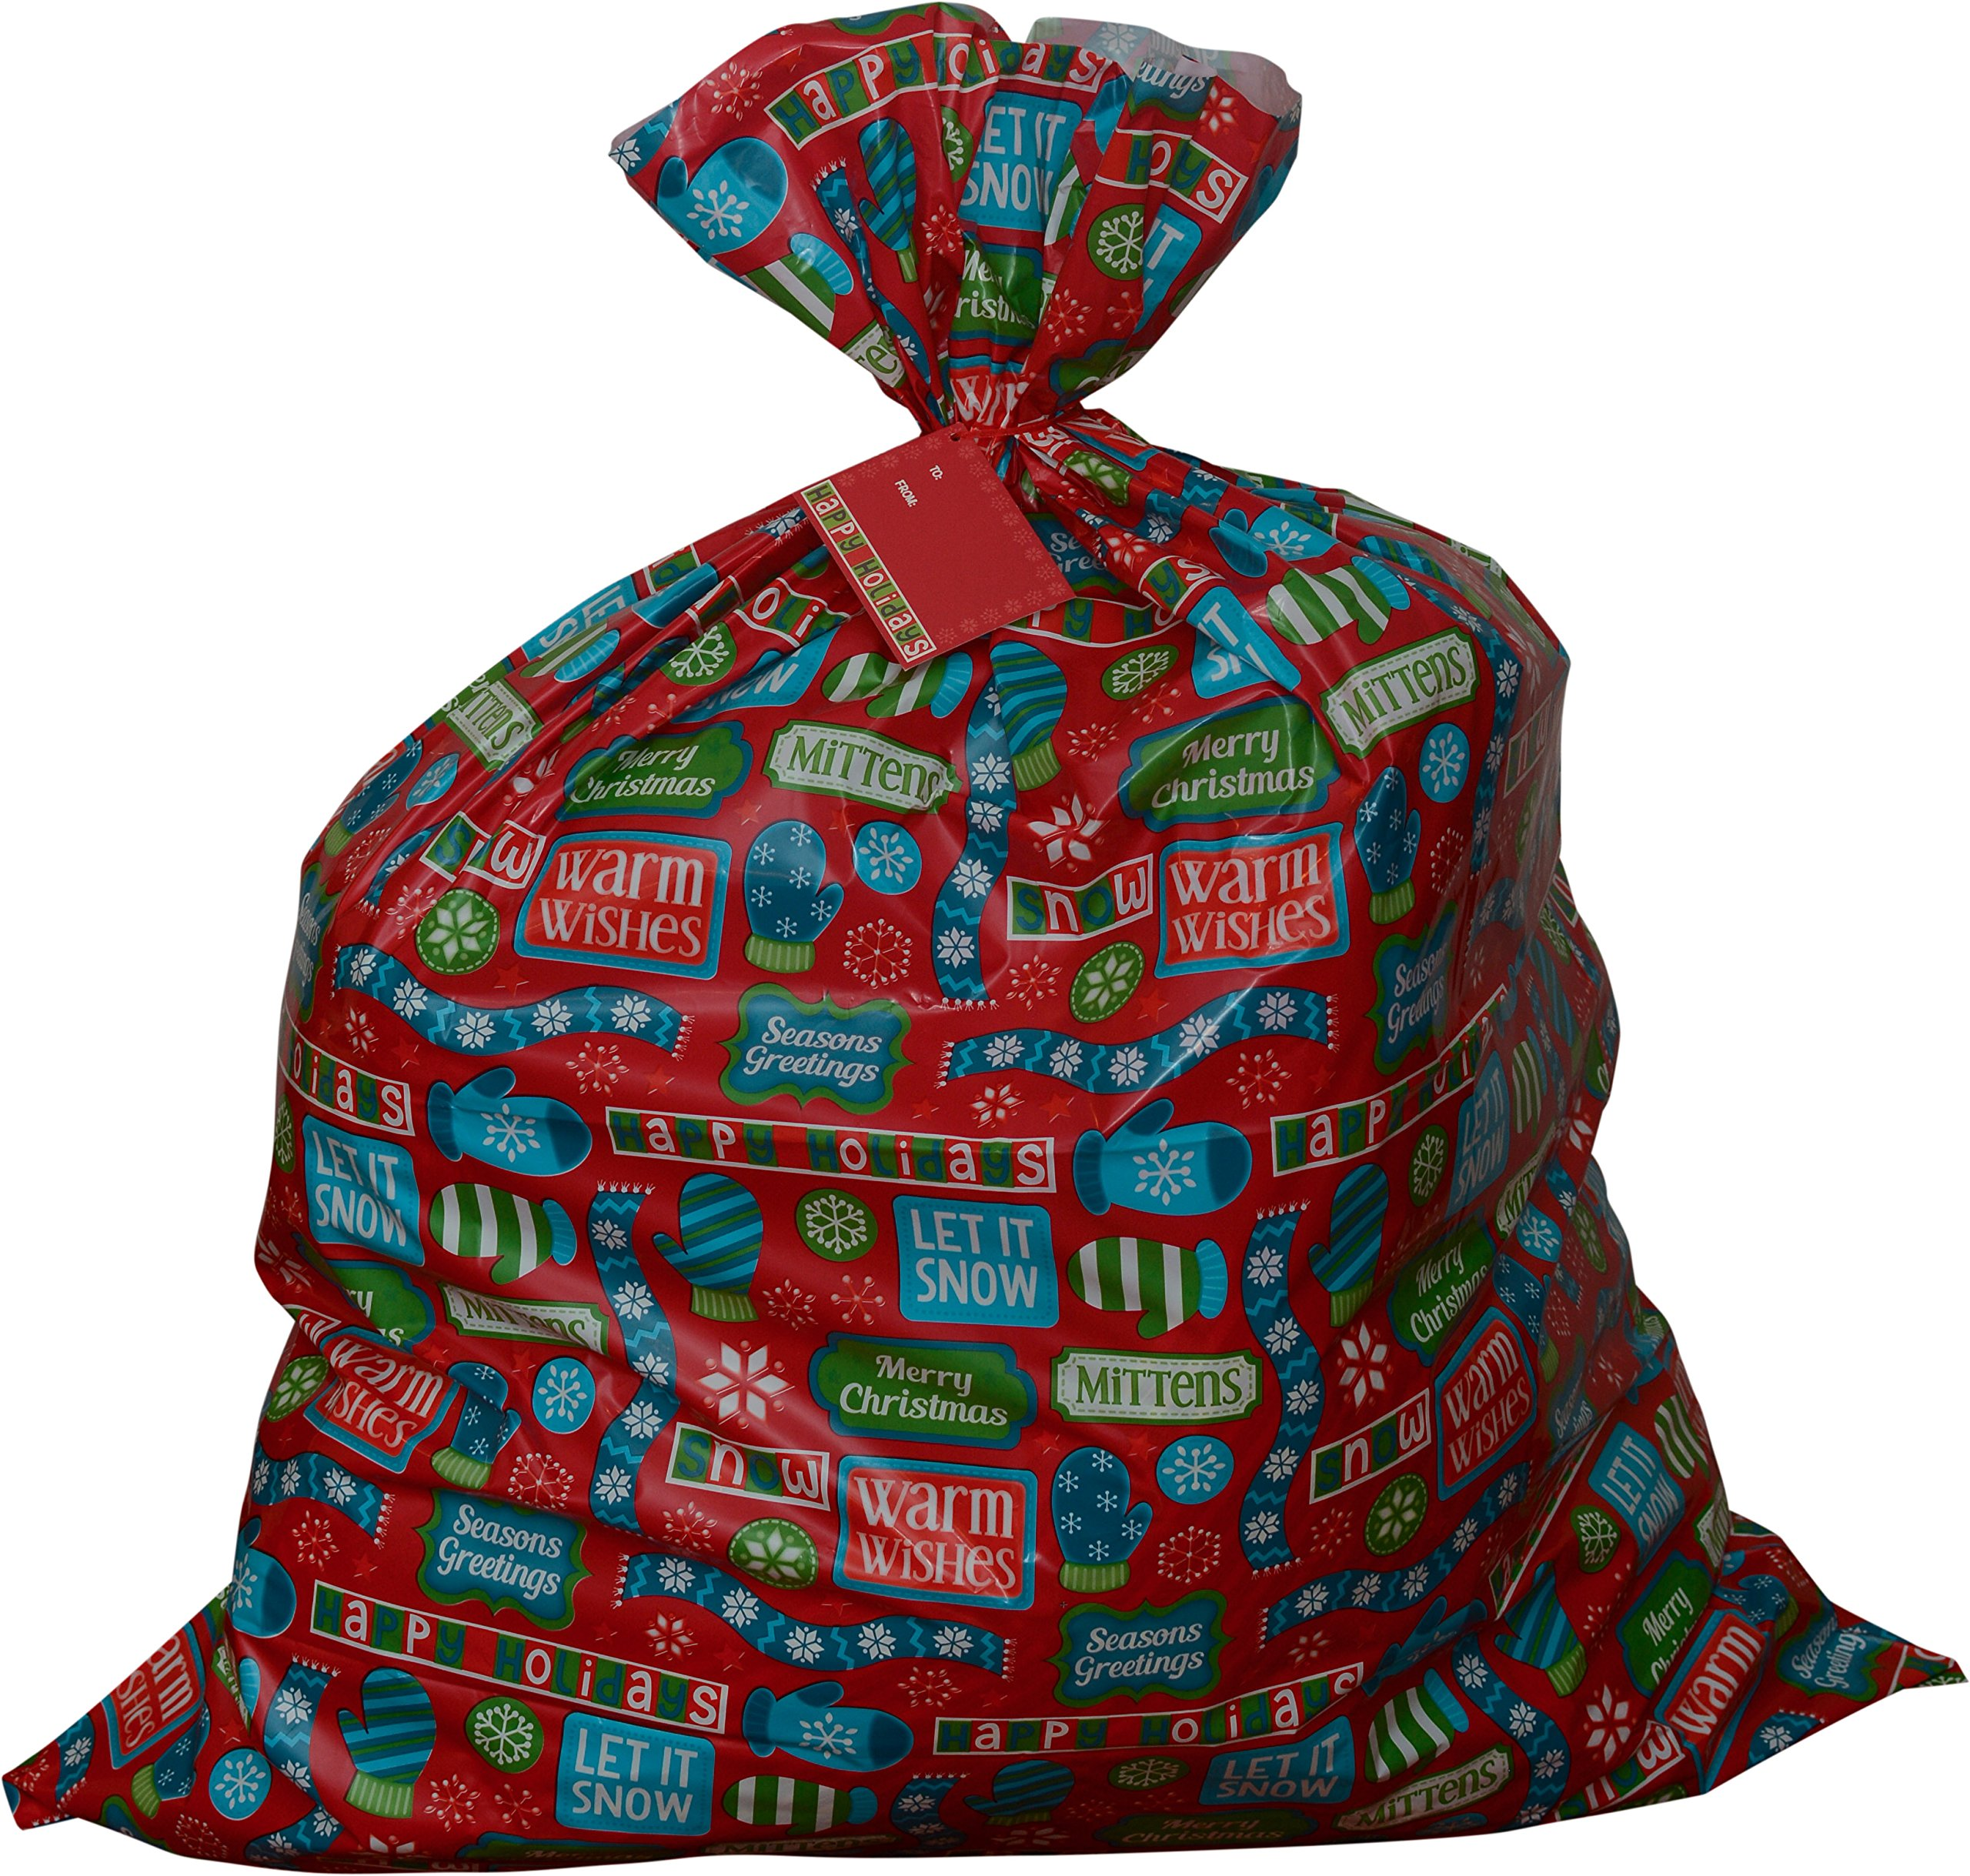 Jumbo gift bag for giant gifts; 36'' x 44'' Christmas prints; pack of 3 heavy duty bags